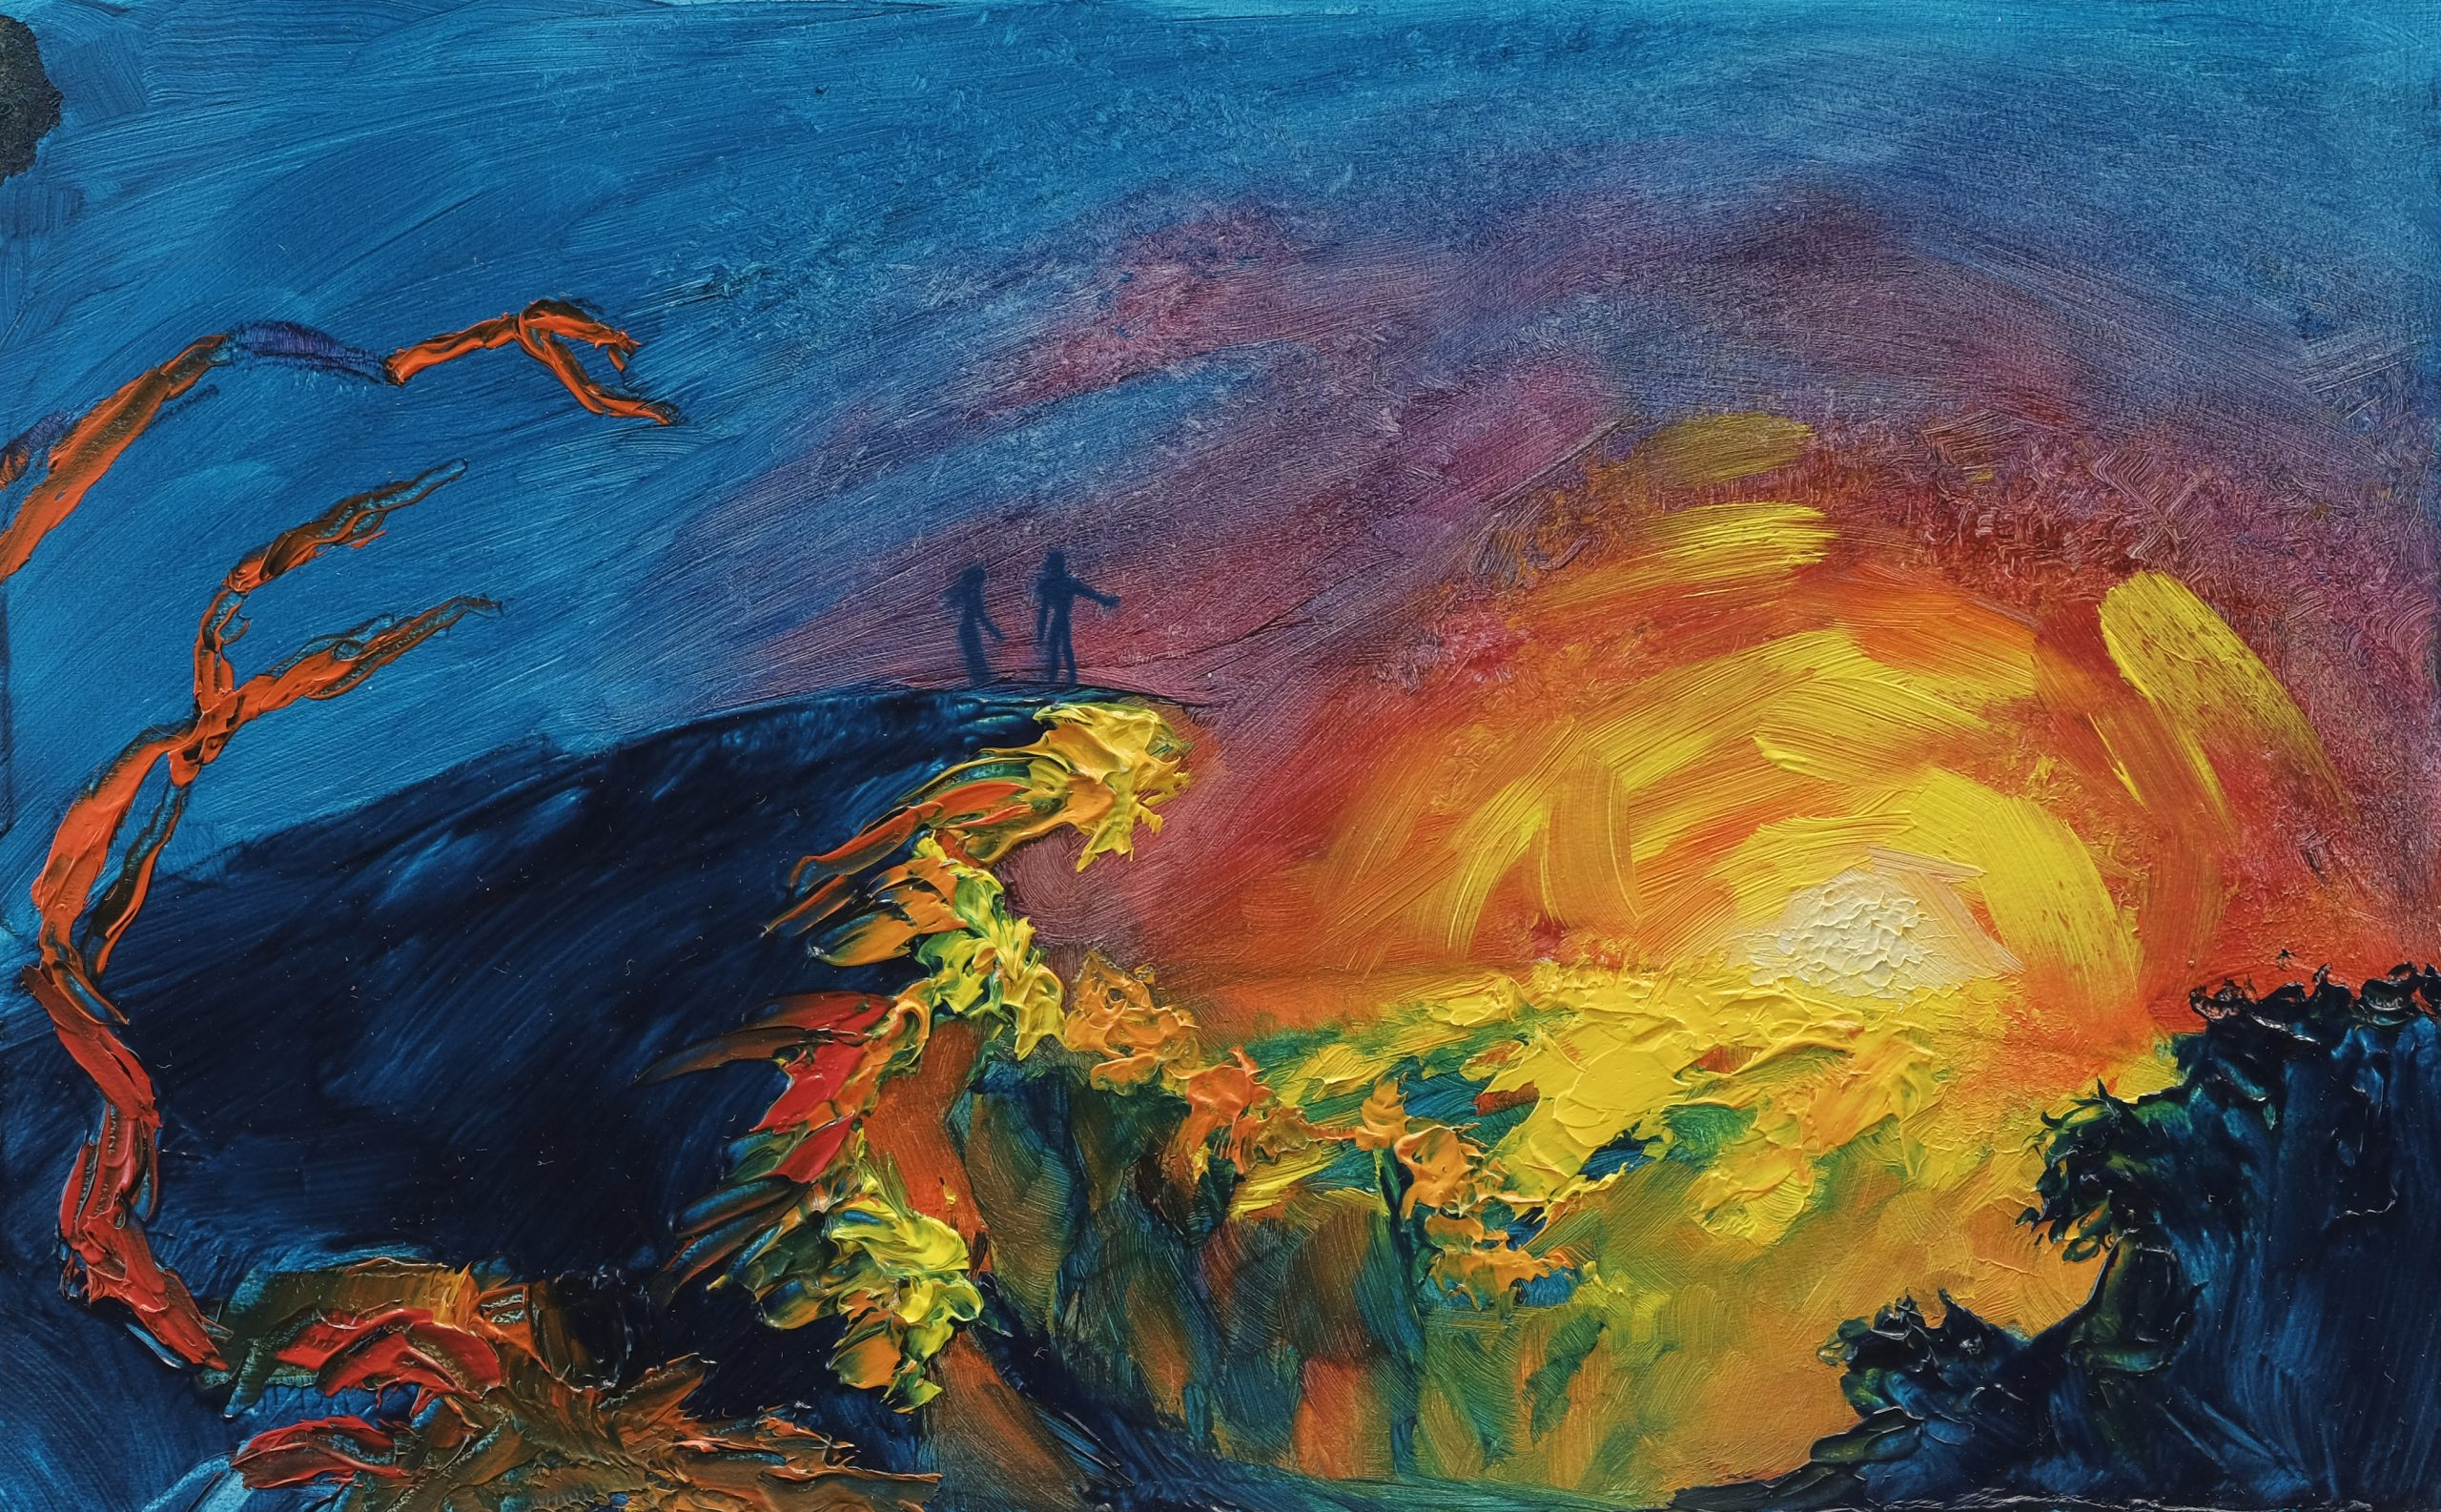 Brazen Rift's impressionistic painting First Tears (Part 3) demonstrates the strong understanding and use of the fundamentals of art.